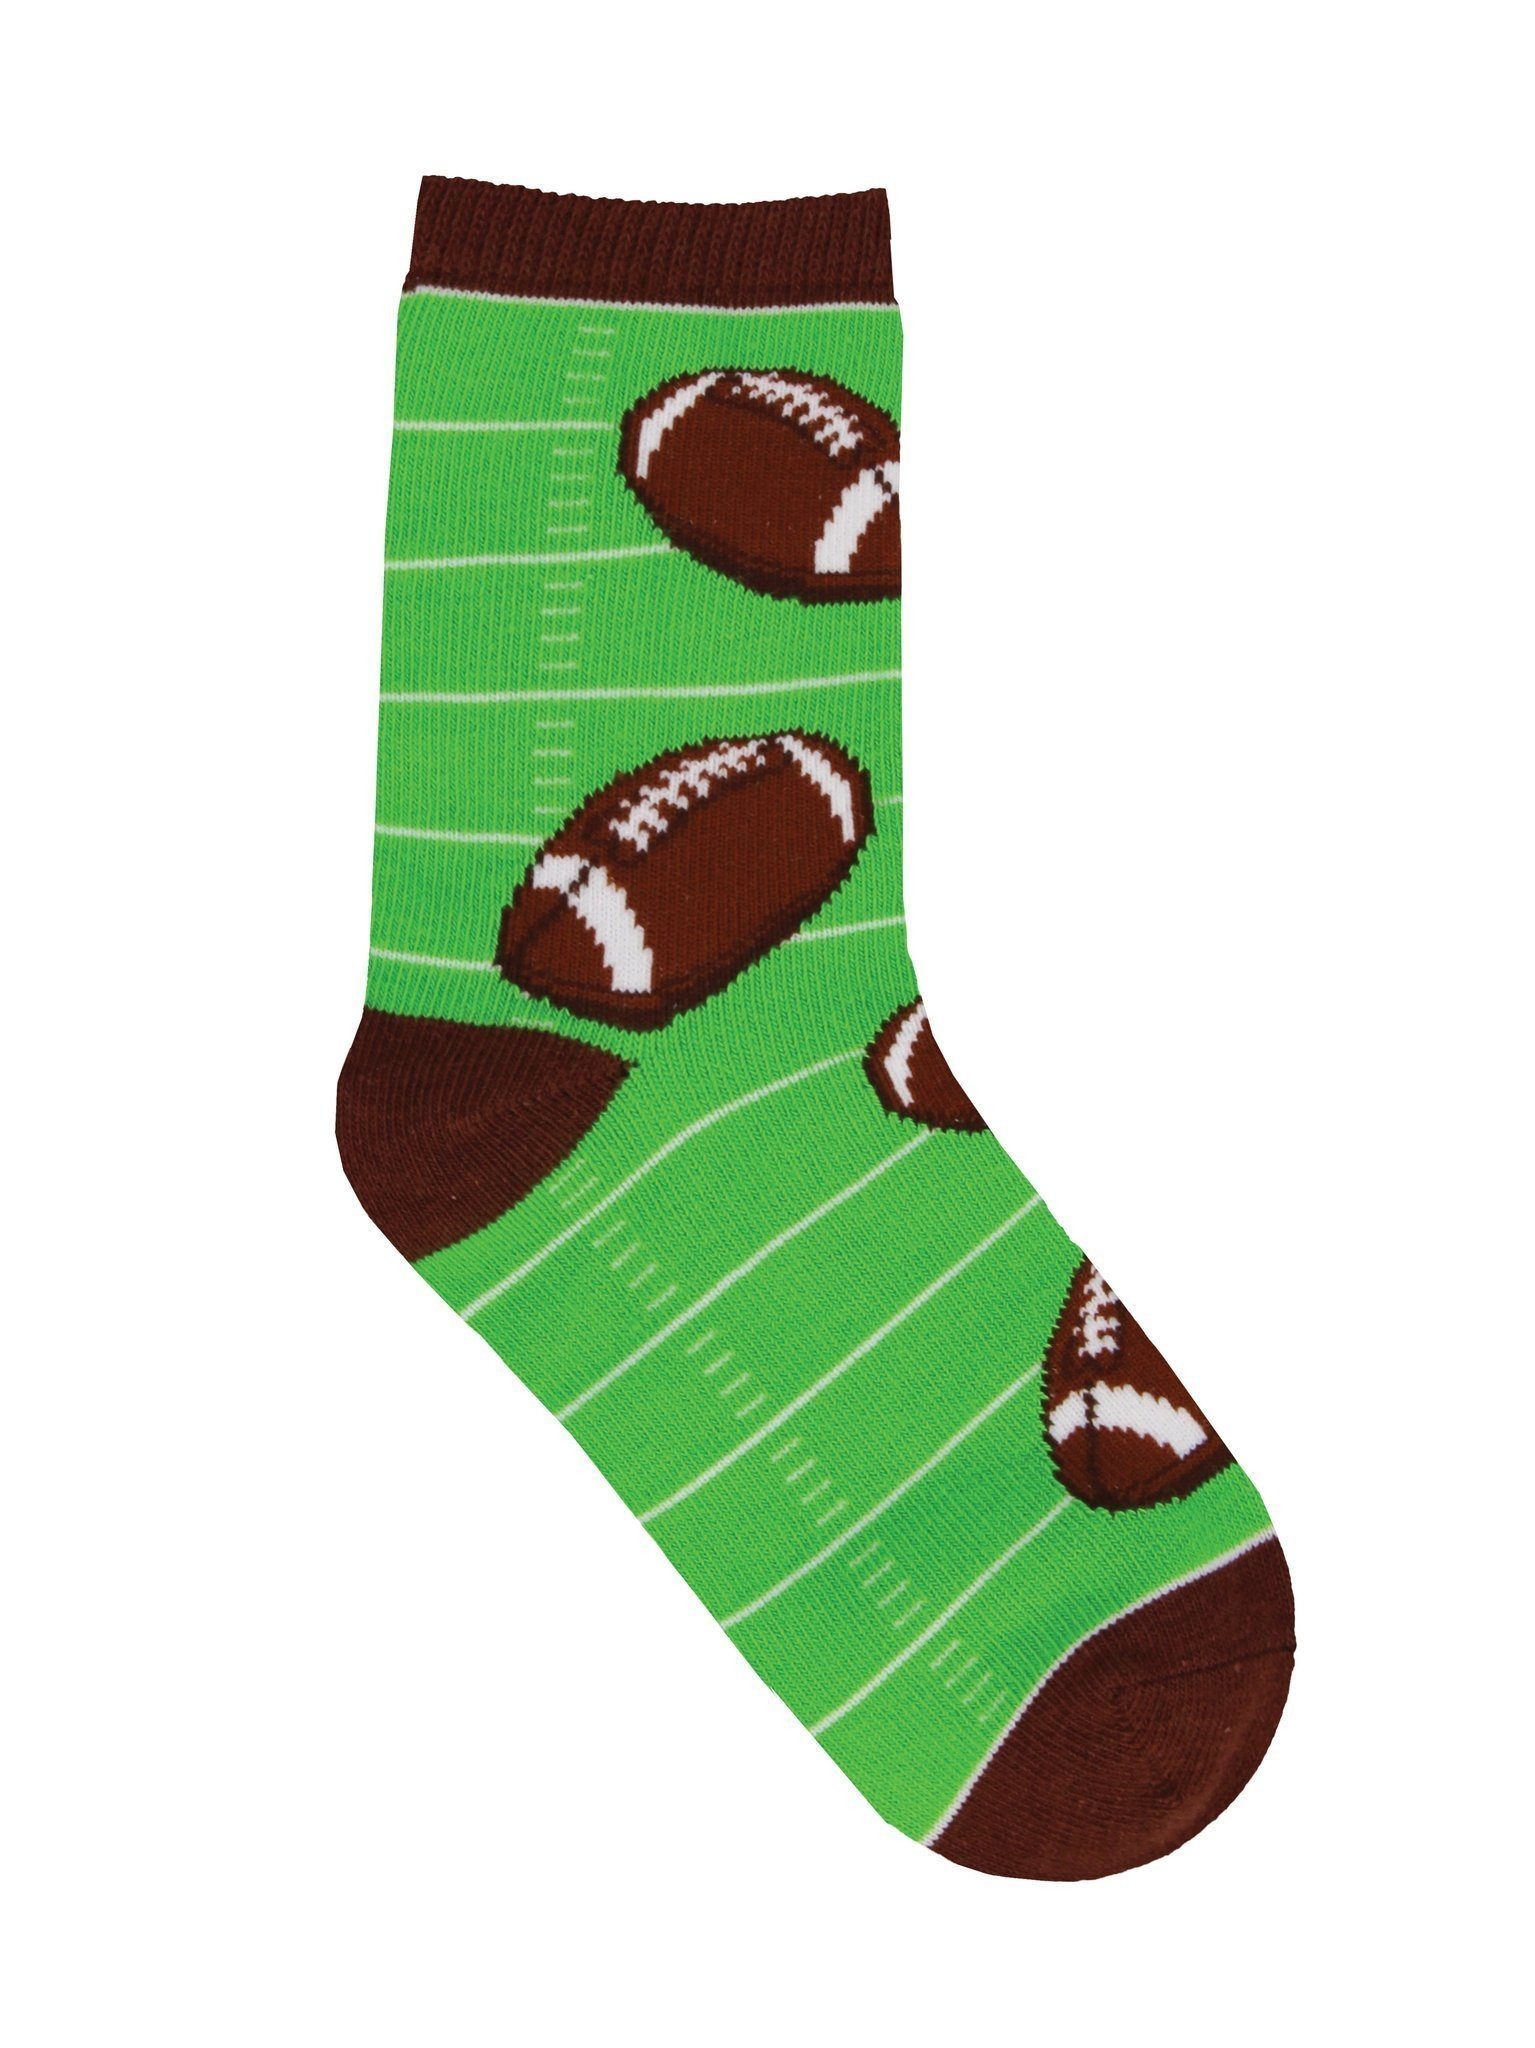 Socksmith - Football Crew Socks | Kids' - Knock Your Socks Off